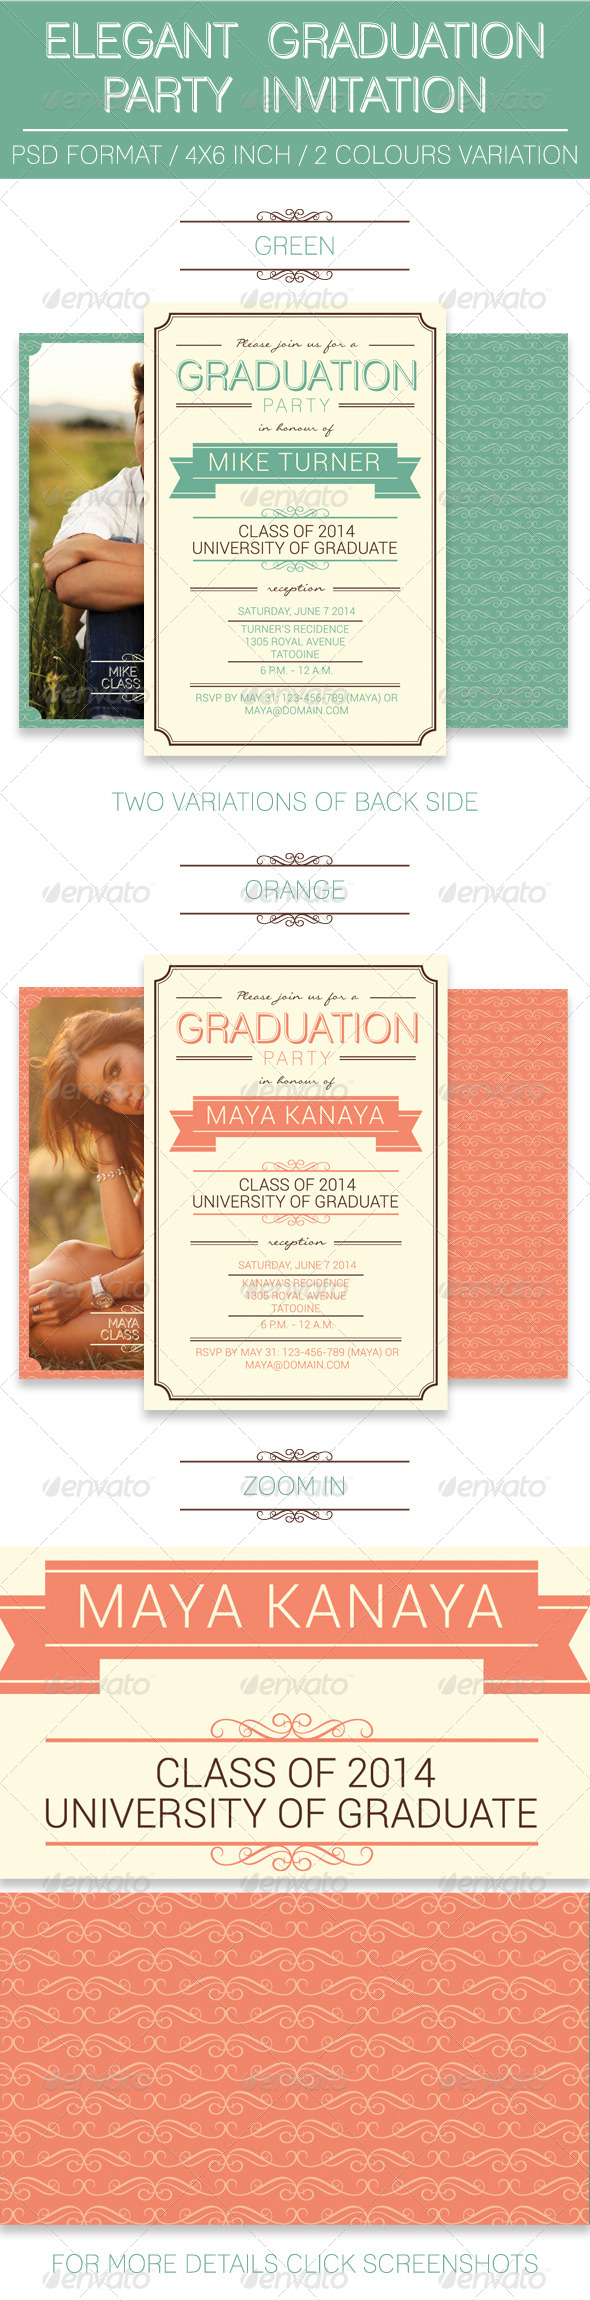 GraphicRiver Elegant Graduation Party Invitation 7940376